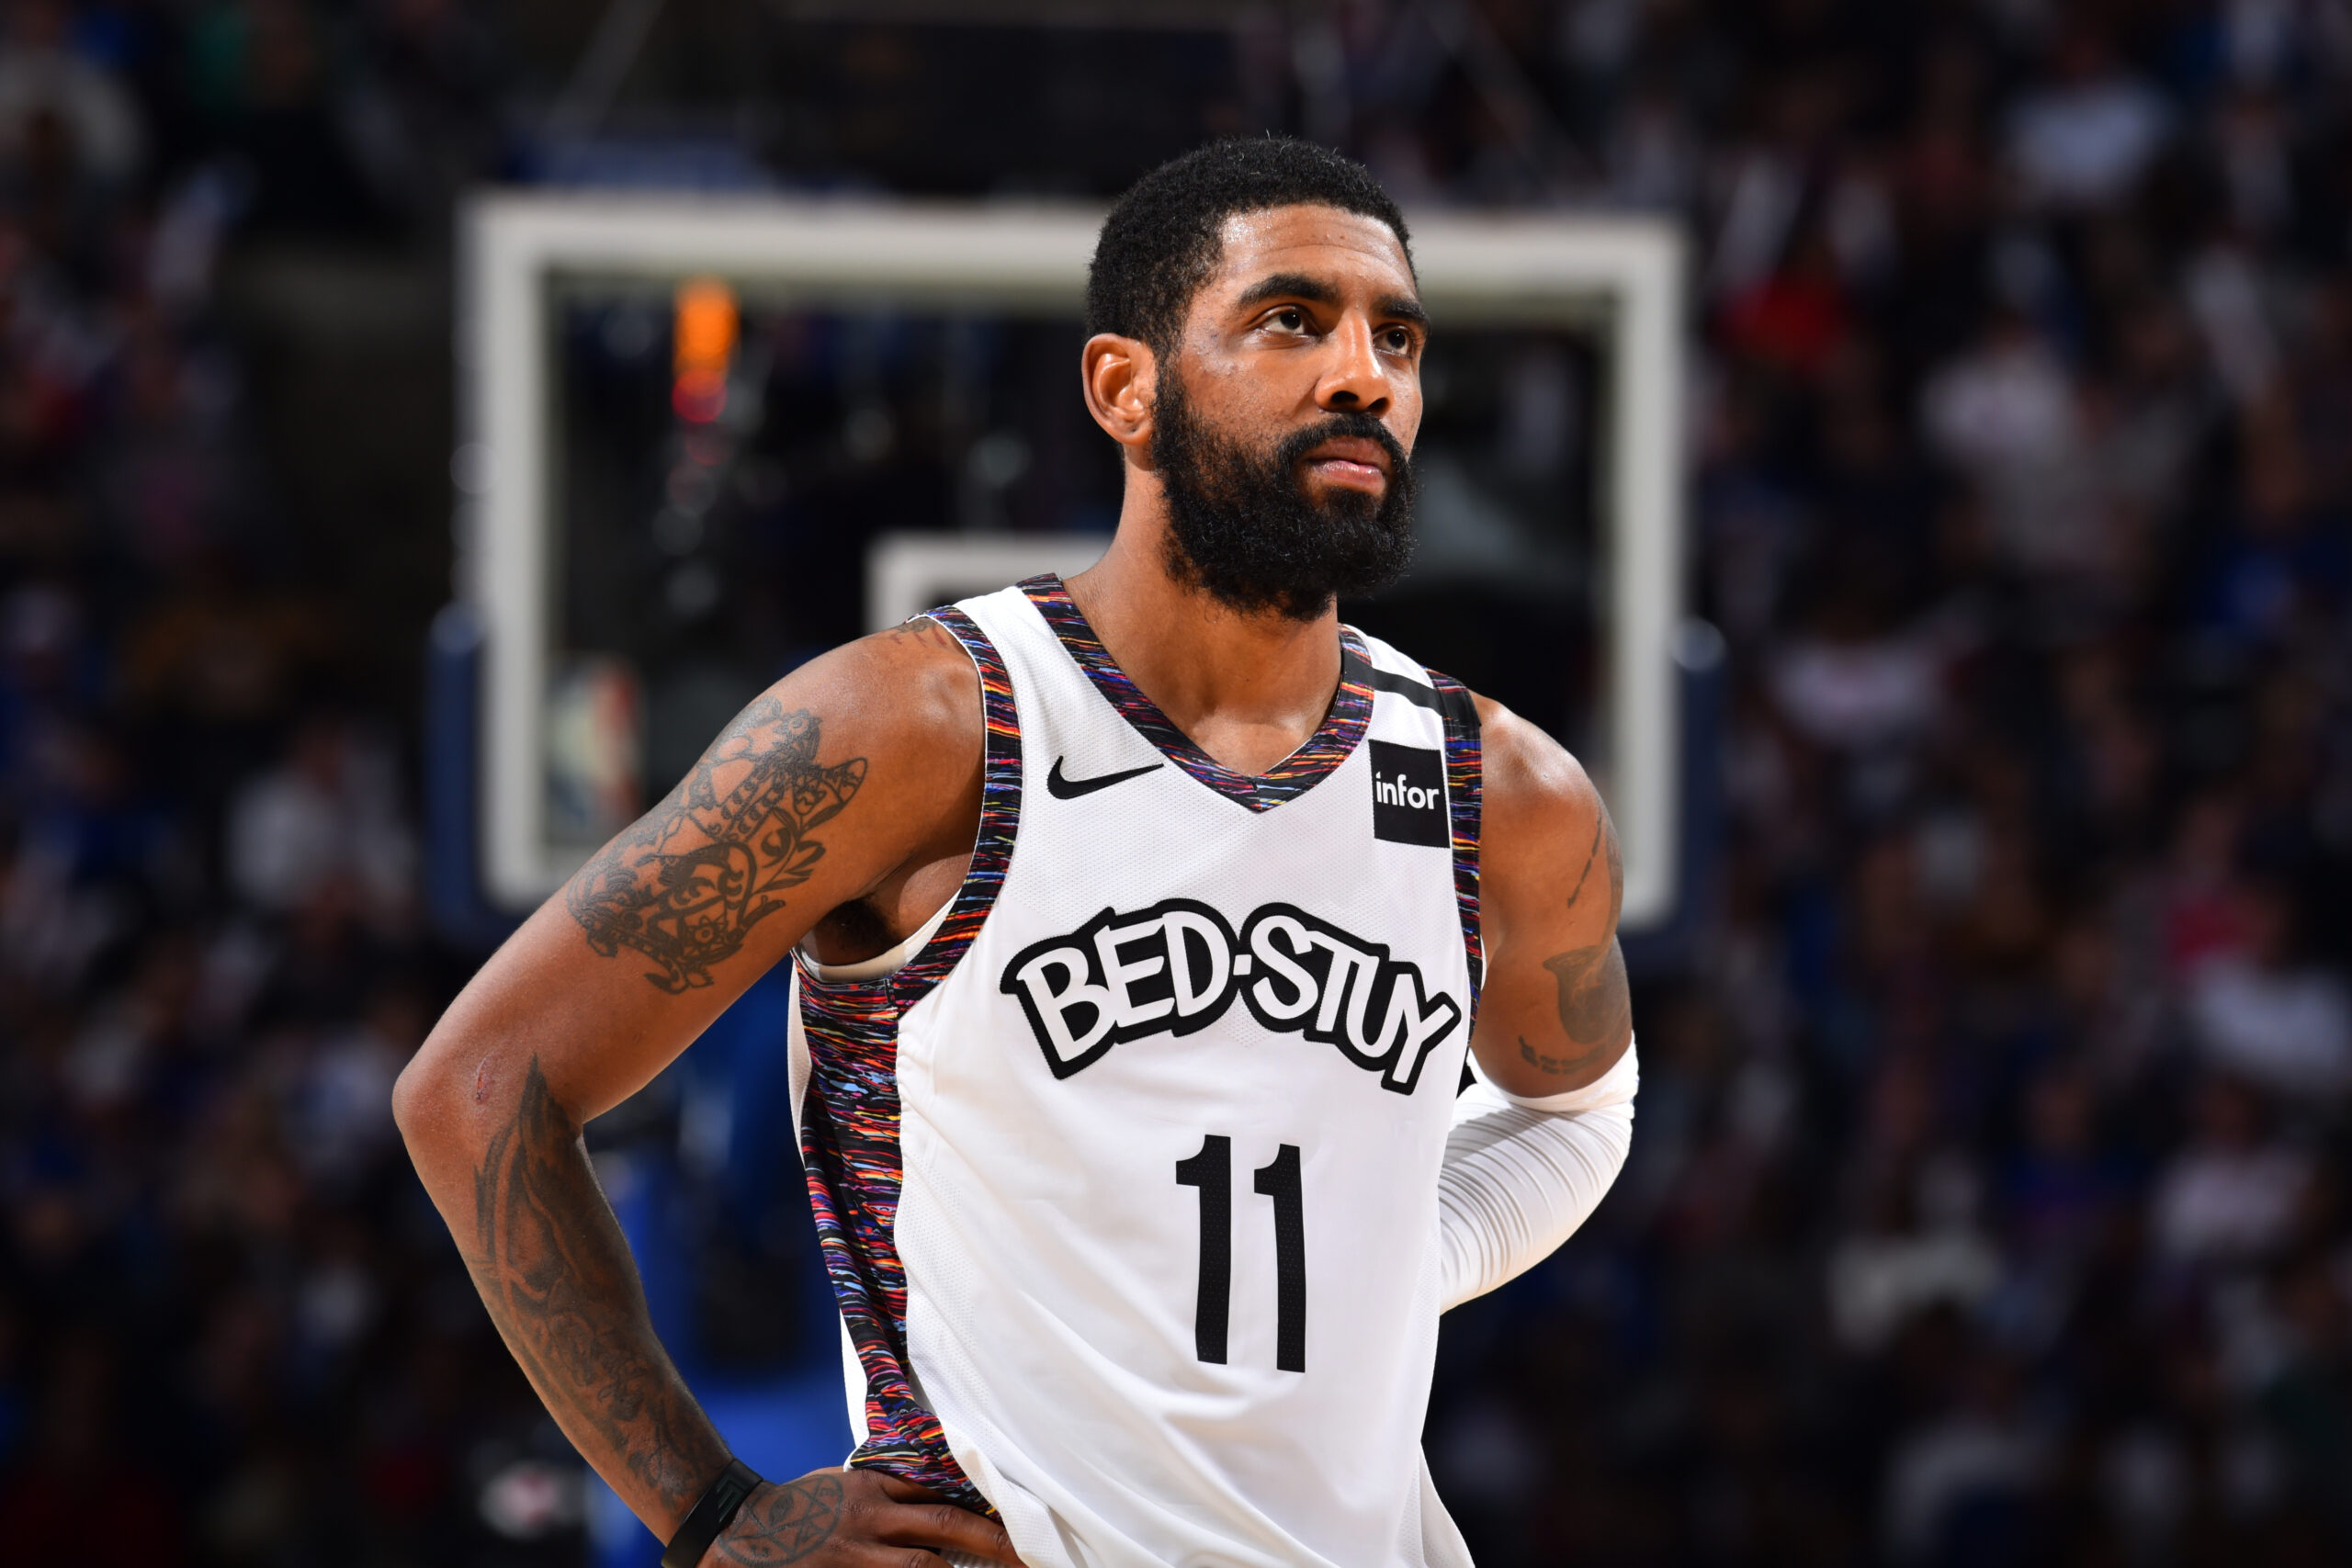 Reports: Irving out indefinitely after re-aggravating shoulder injury